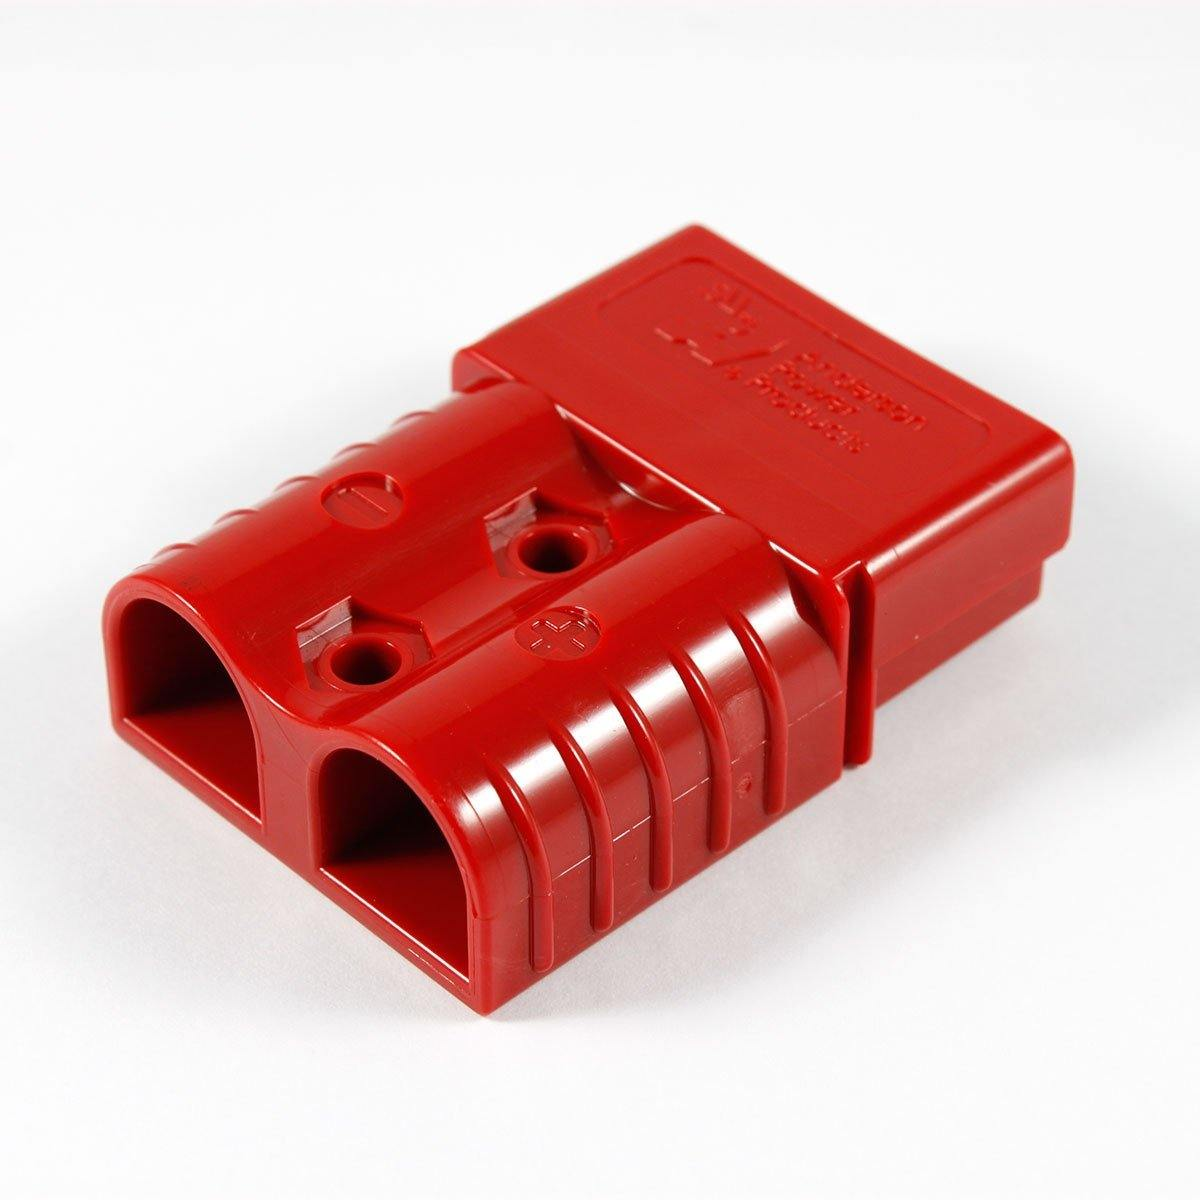 Anderson SB120 120A Housing 2 Way RED